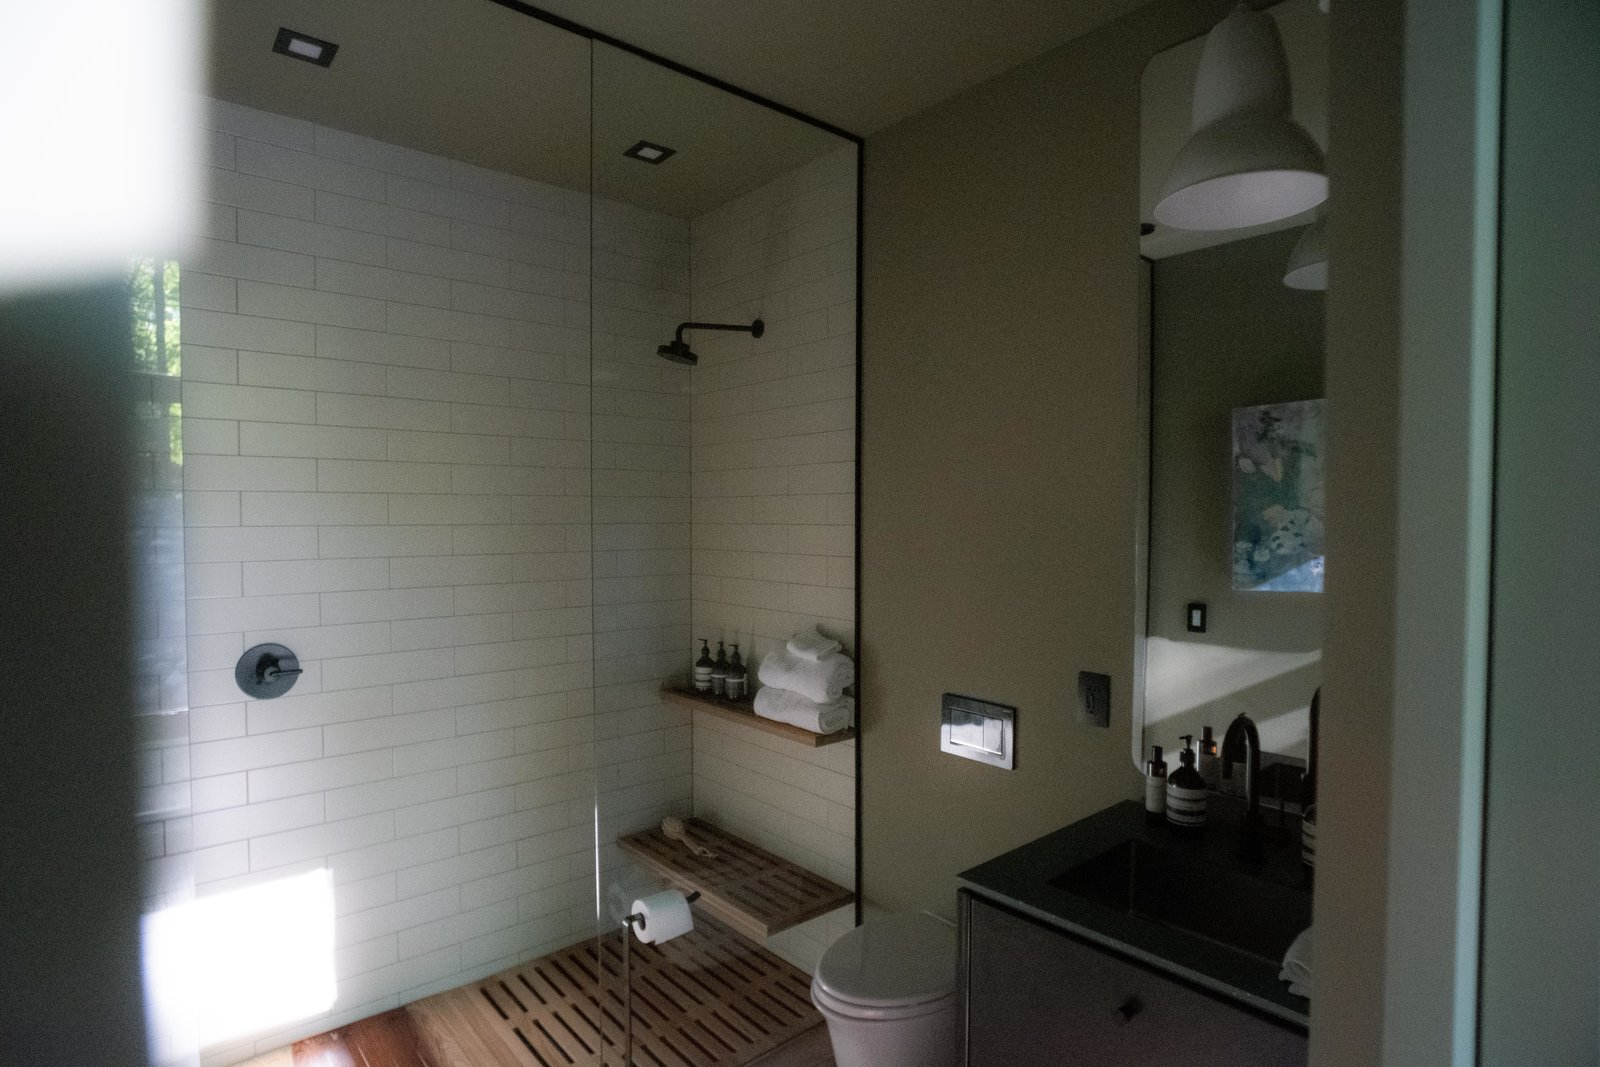 Bath, Subway Tile, Full, Open, Pendant, Undermount, Ceiling, Medium Hardwood, and Two Piece Guest bathroom with wood grate floor and shelving.  Bath Medium Hardwood Ceiling Pendant Subway Tile Photos from Birch Le Collaboration House